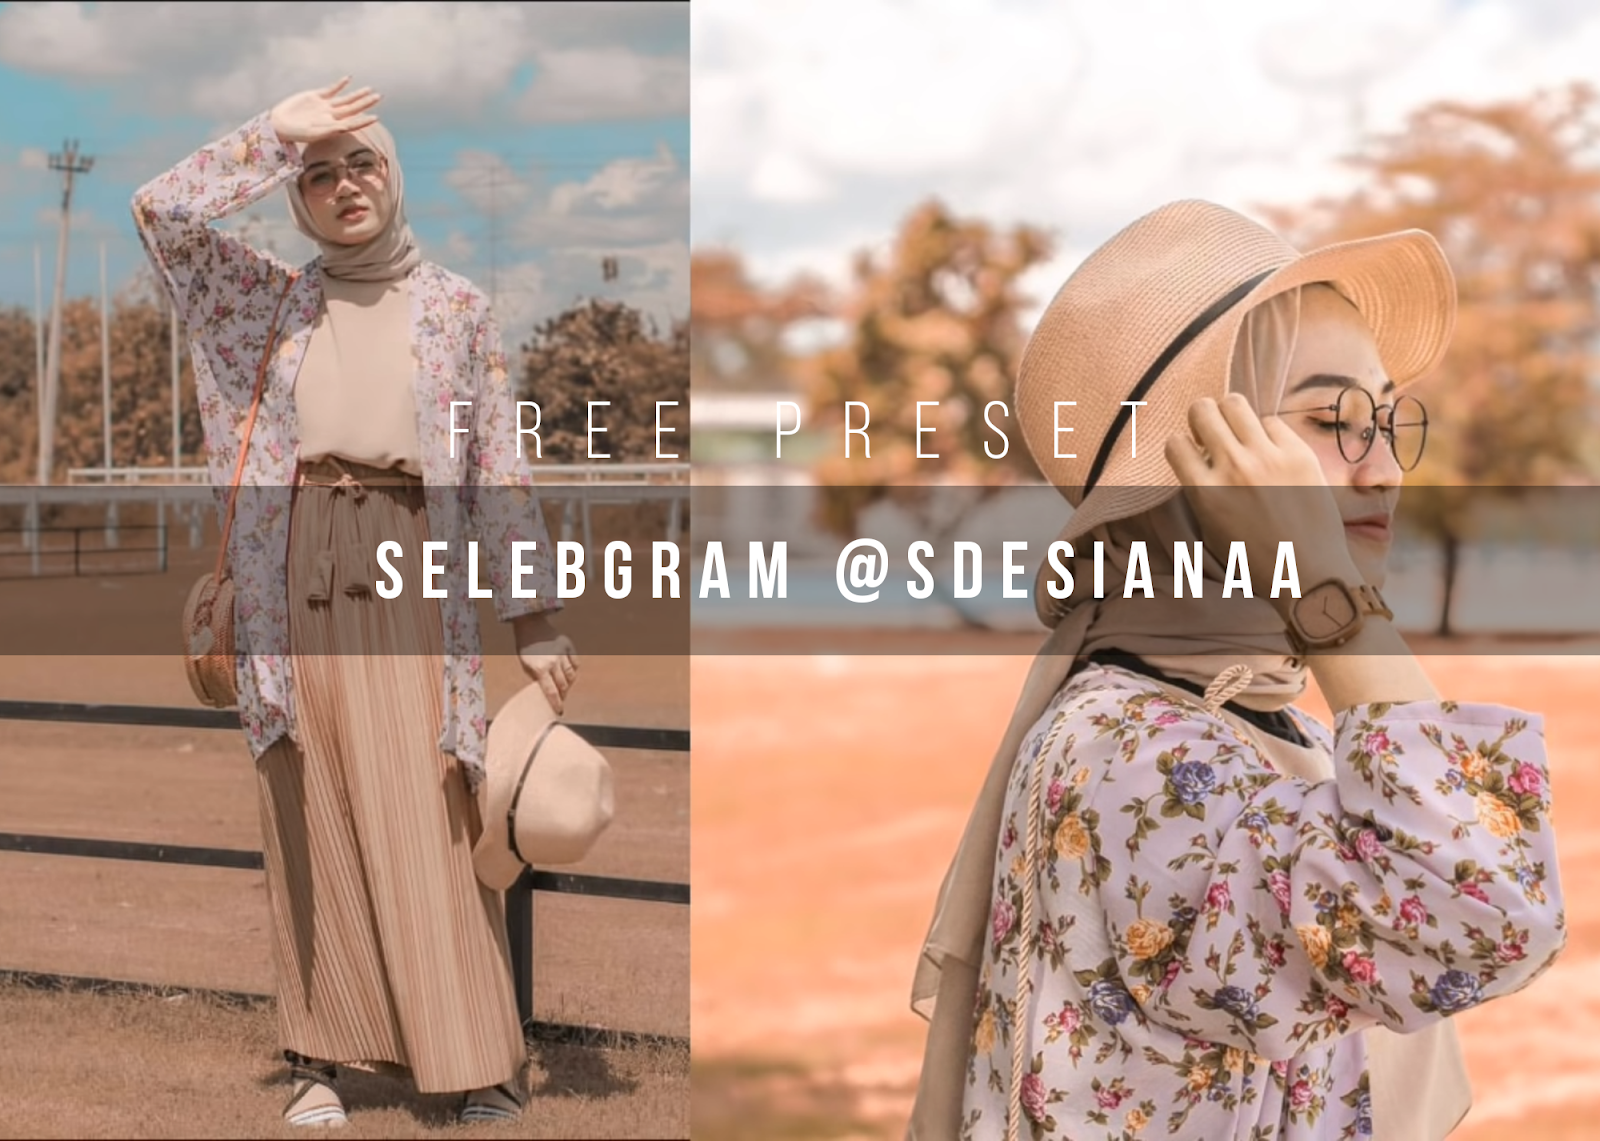 Download Gratis Preset Selebgram @Sdesianaa Lightroom Mobile